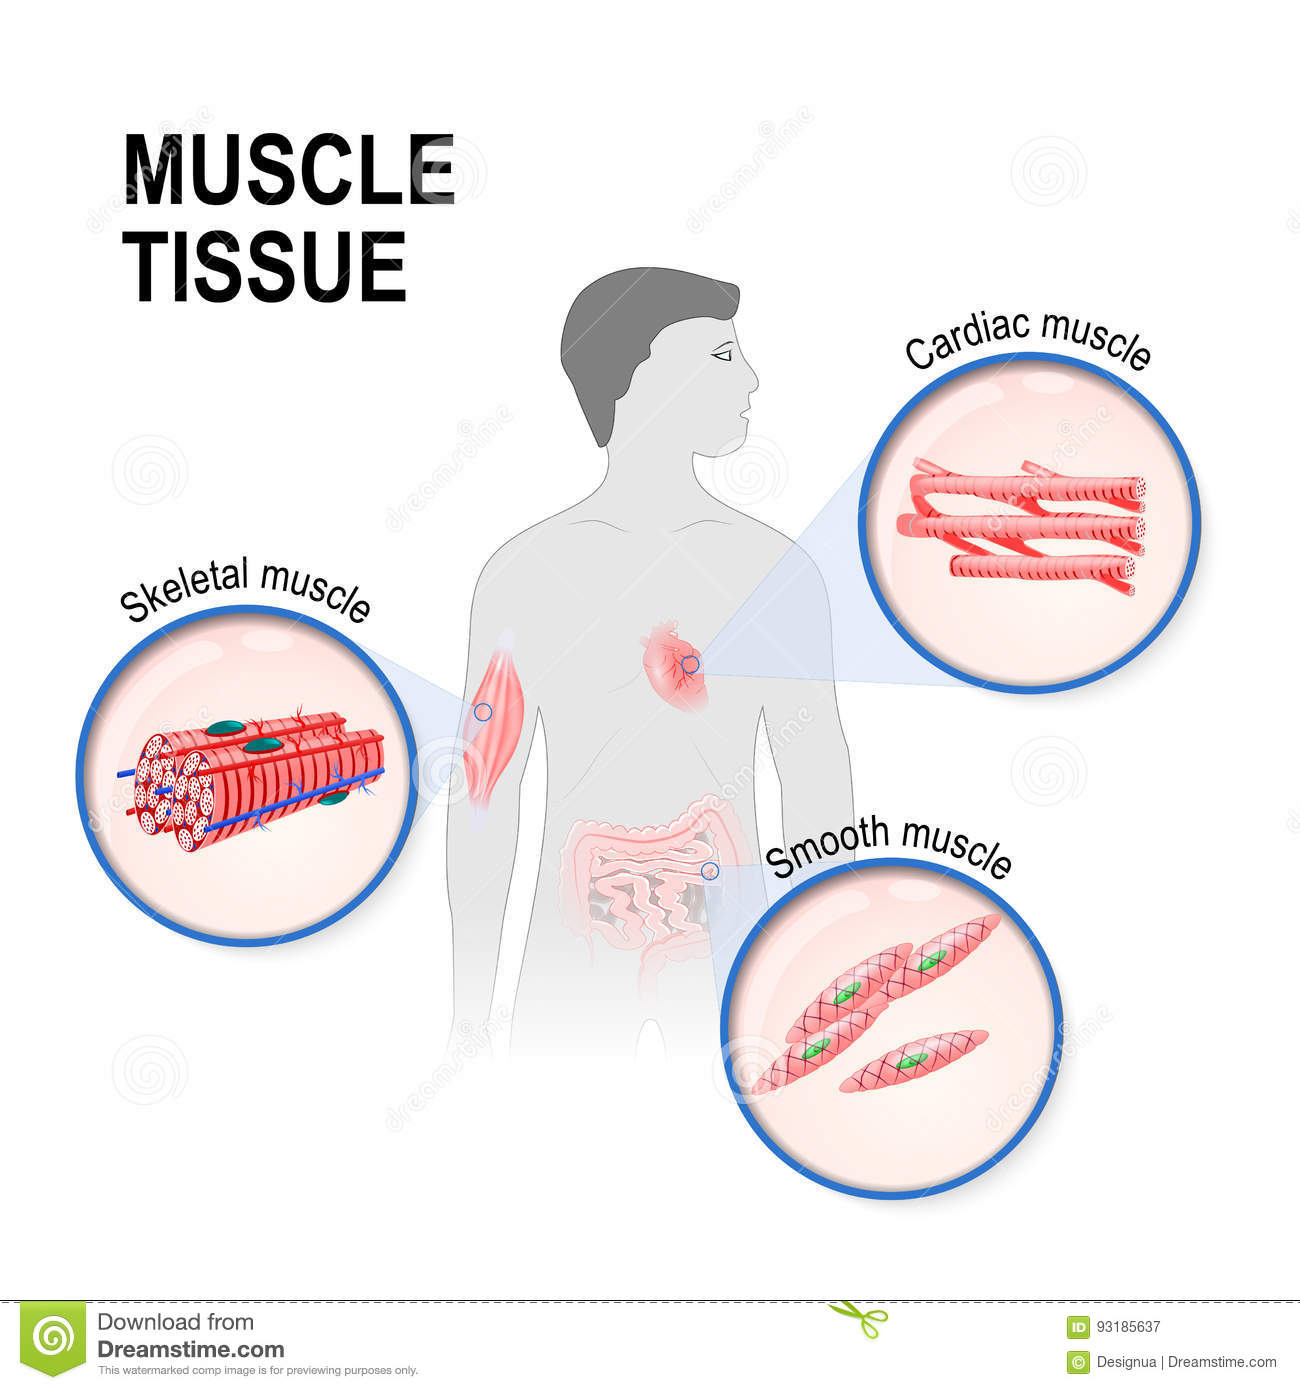 types of muscle tissue. stock vector. illustration of education